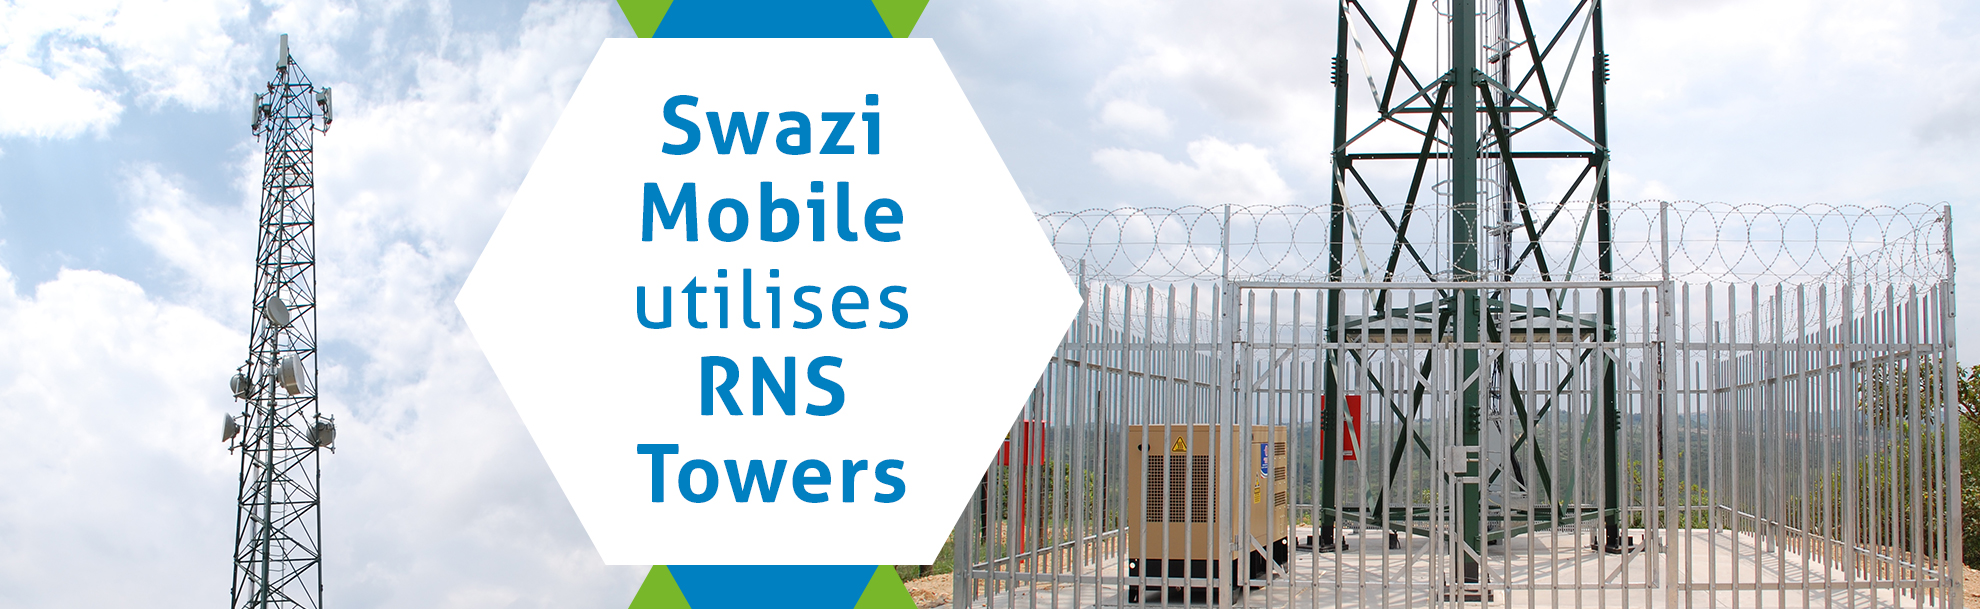 Swazi Mobile utilises RNS Towers